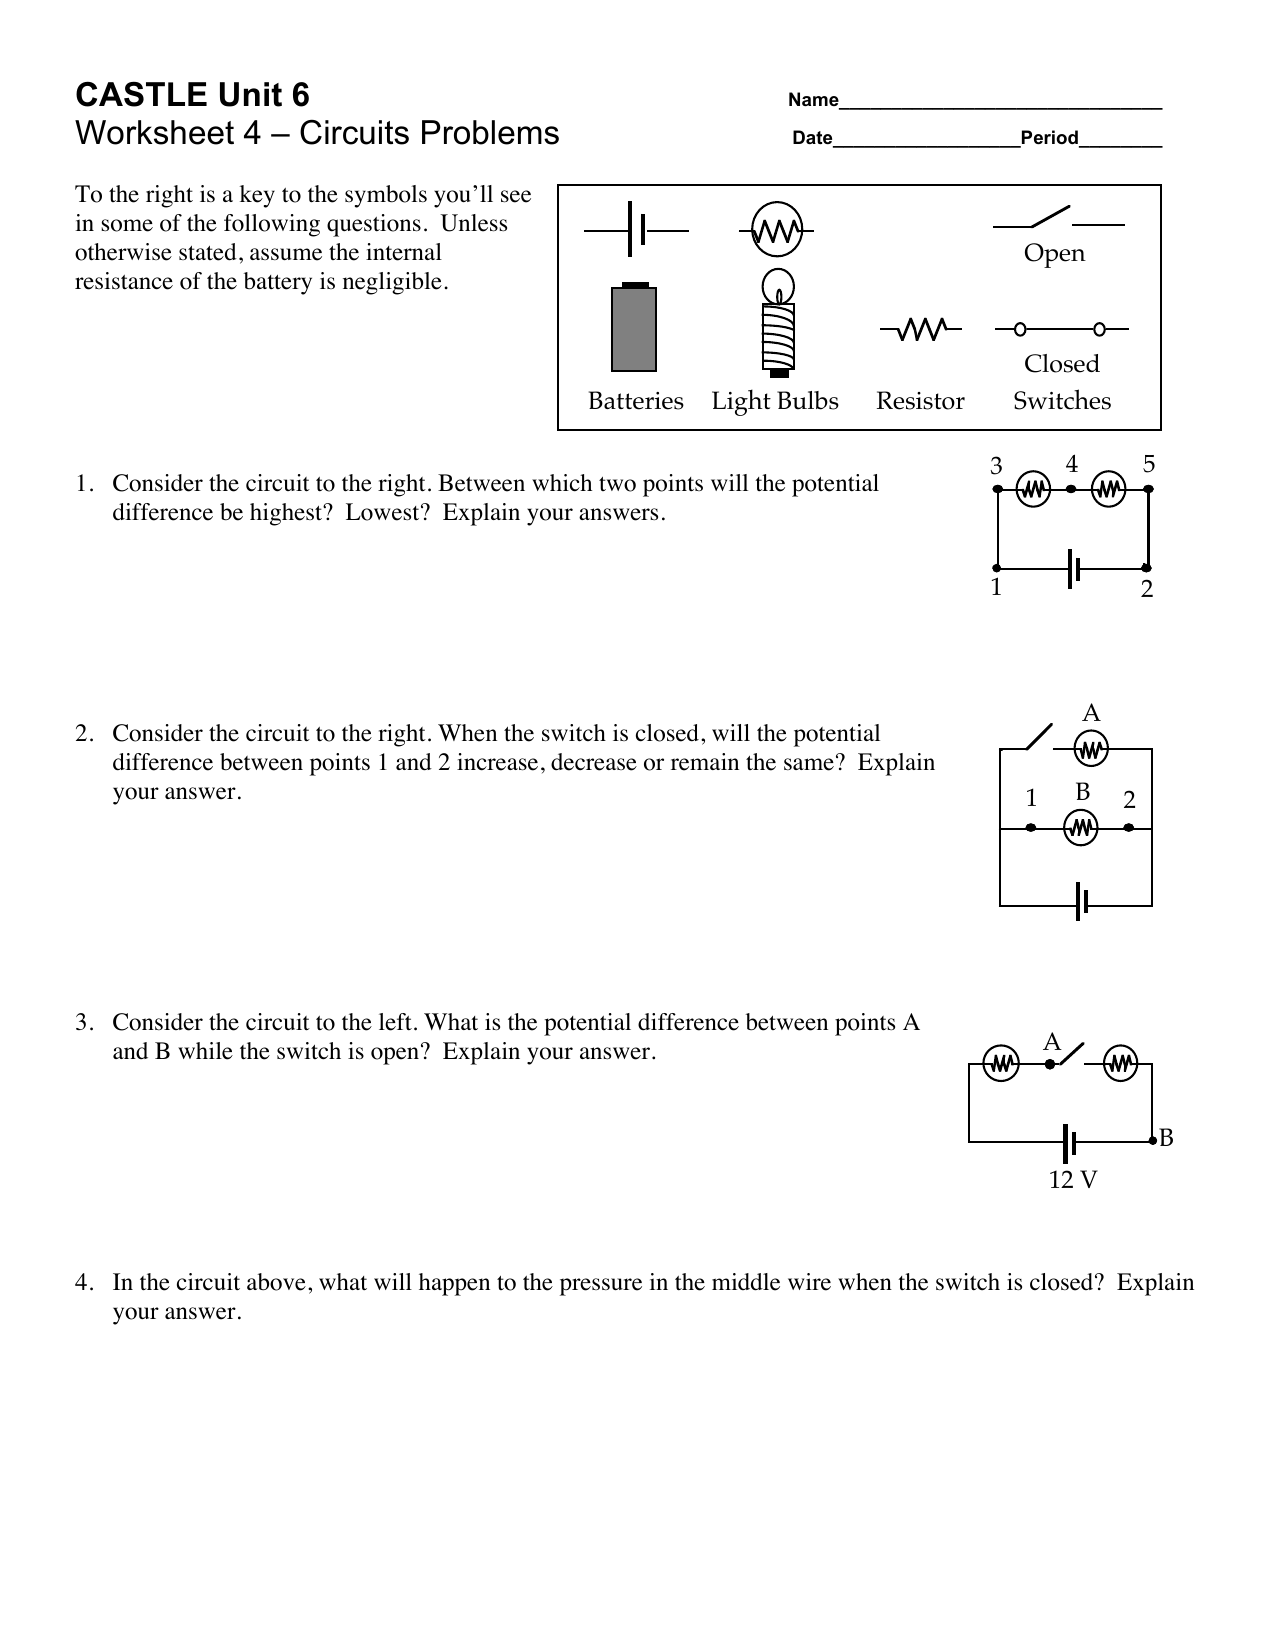 Castle Unit 6 Worksheet 4 Circuits Problems What Is The Circuit